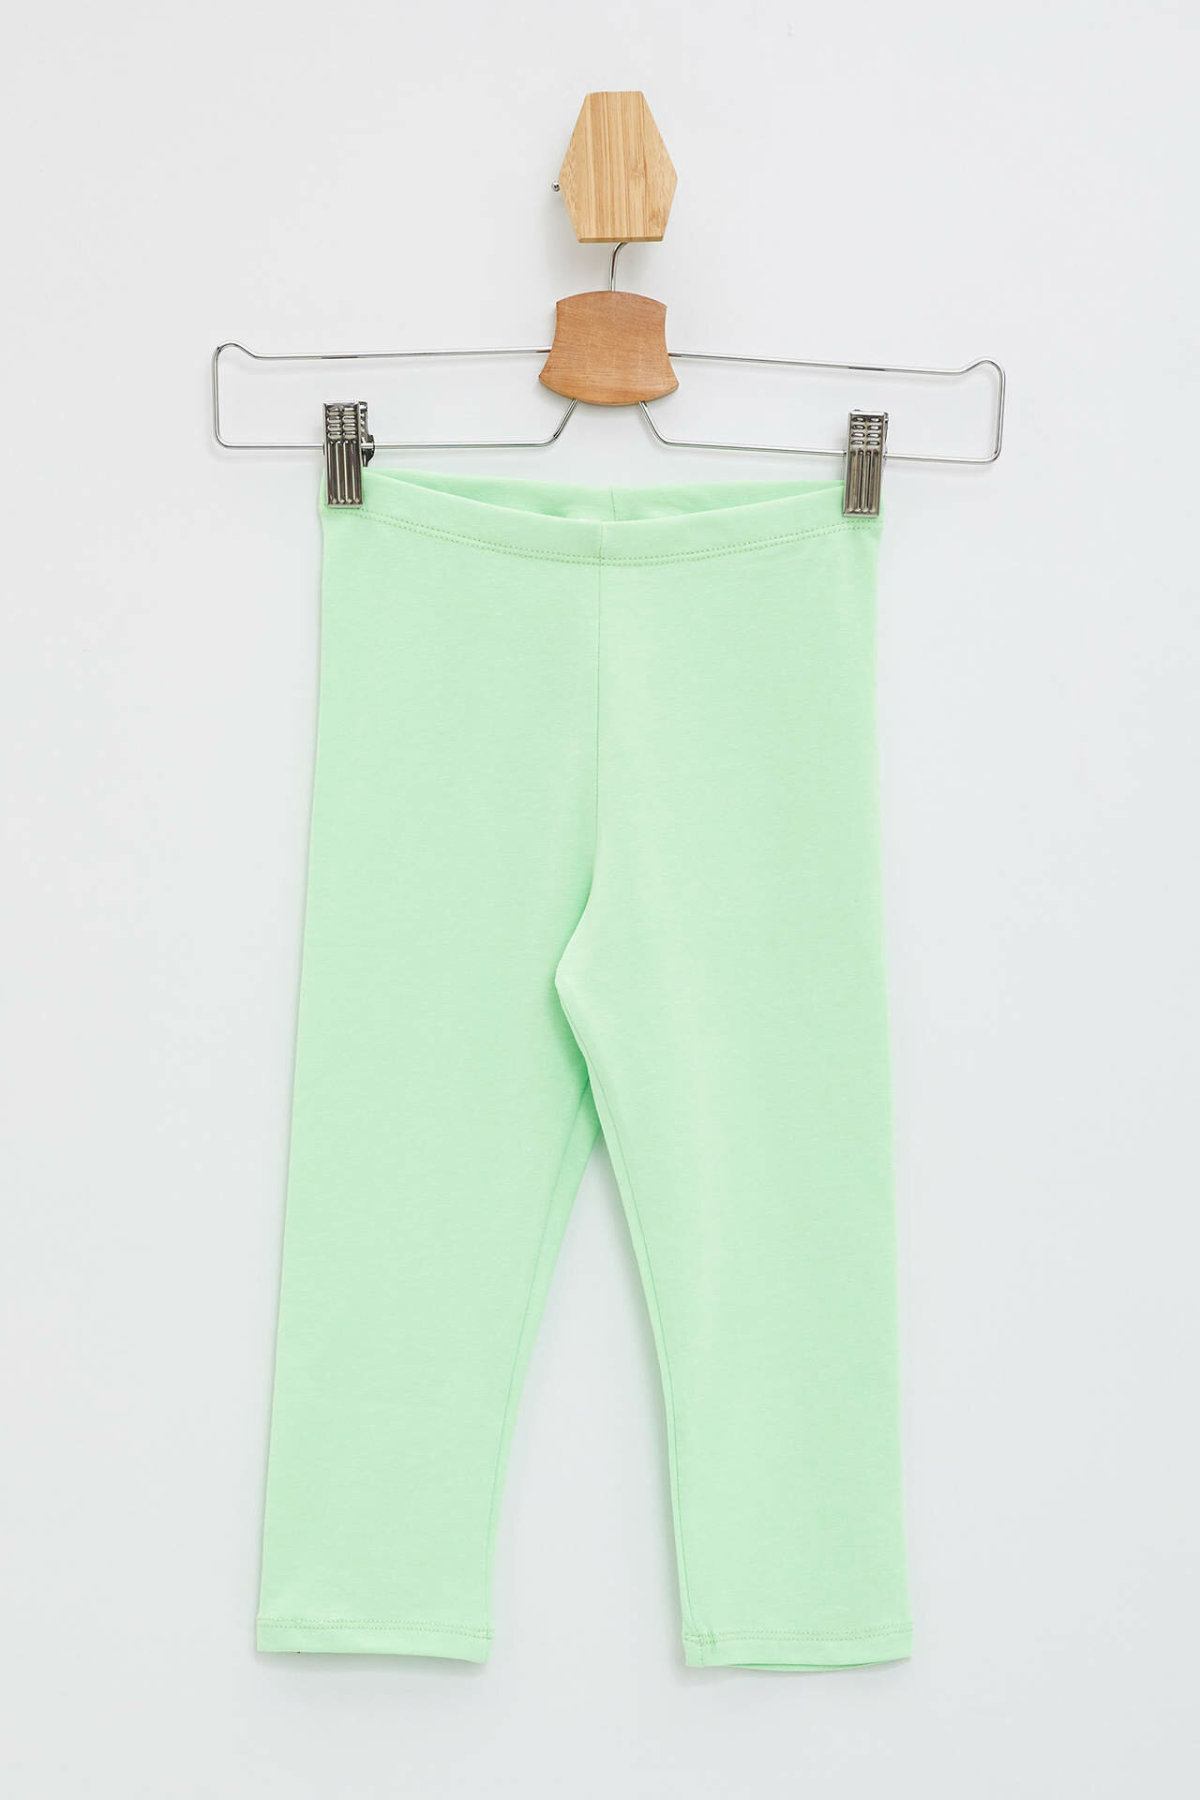 DeFacto Girl Summer Casual Fit Green Color Leggings Pants Girls Elastic Long Pant Kids Neon Color Leggings-L7093A619HS